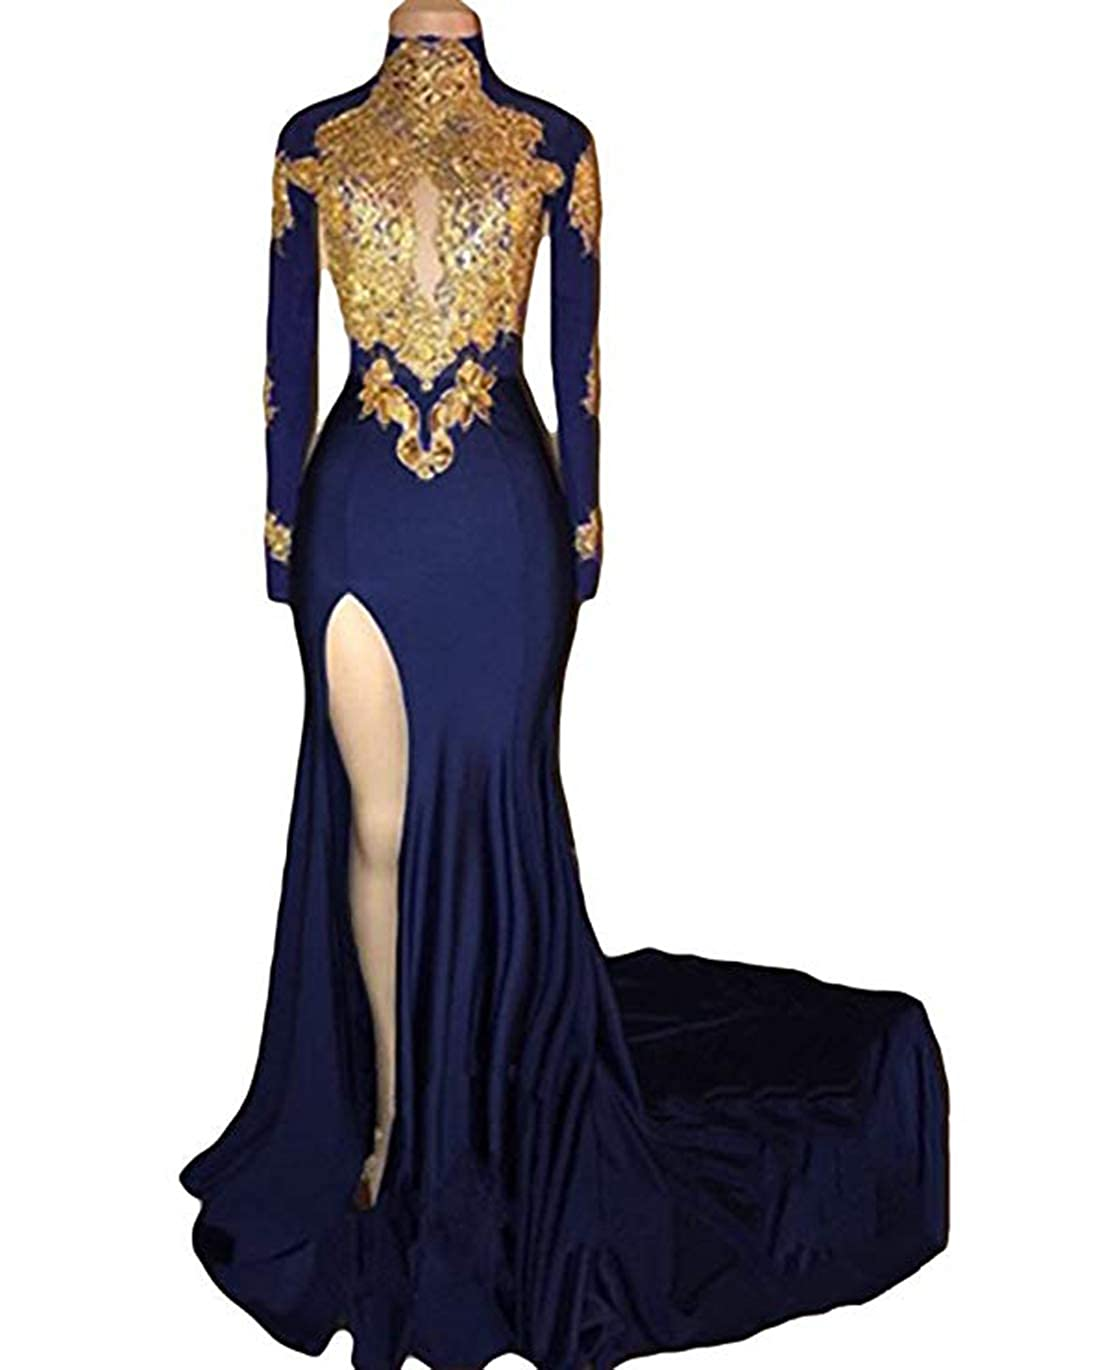 Navy bluee olise bridal Women's Mermaid Prom Dresses 2018 High Neck gold Appliques Long Sleeves Evening Gowns